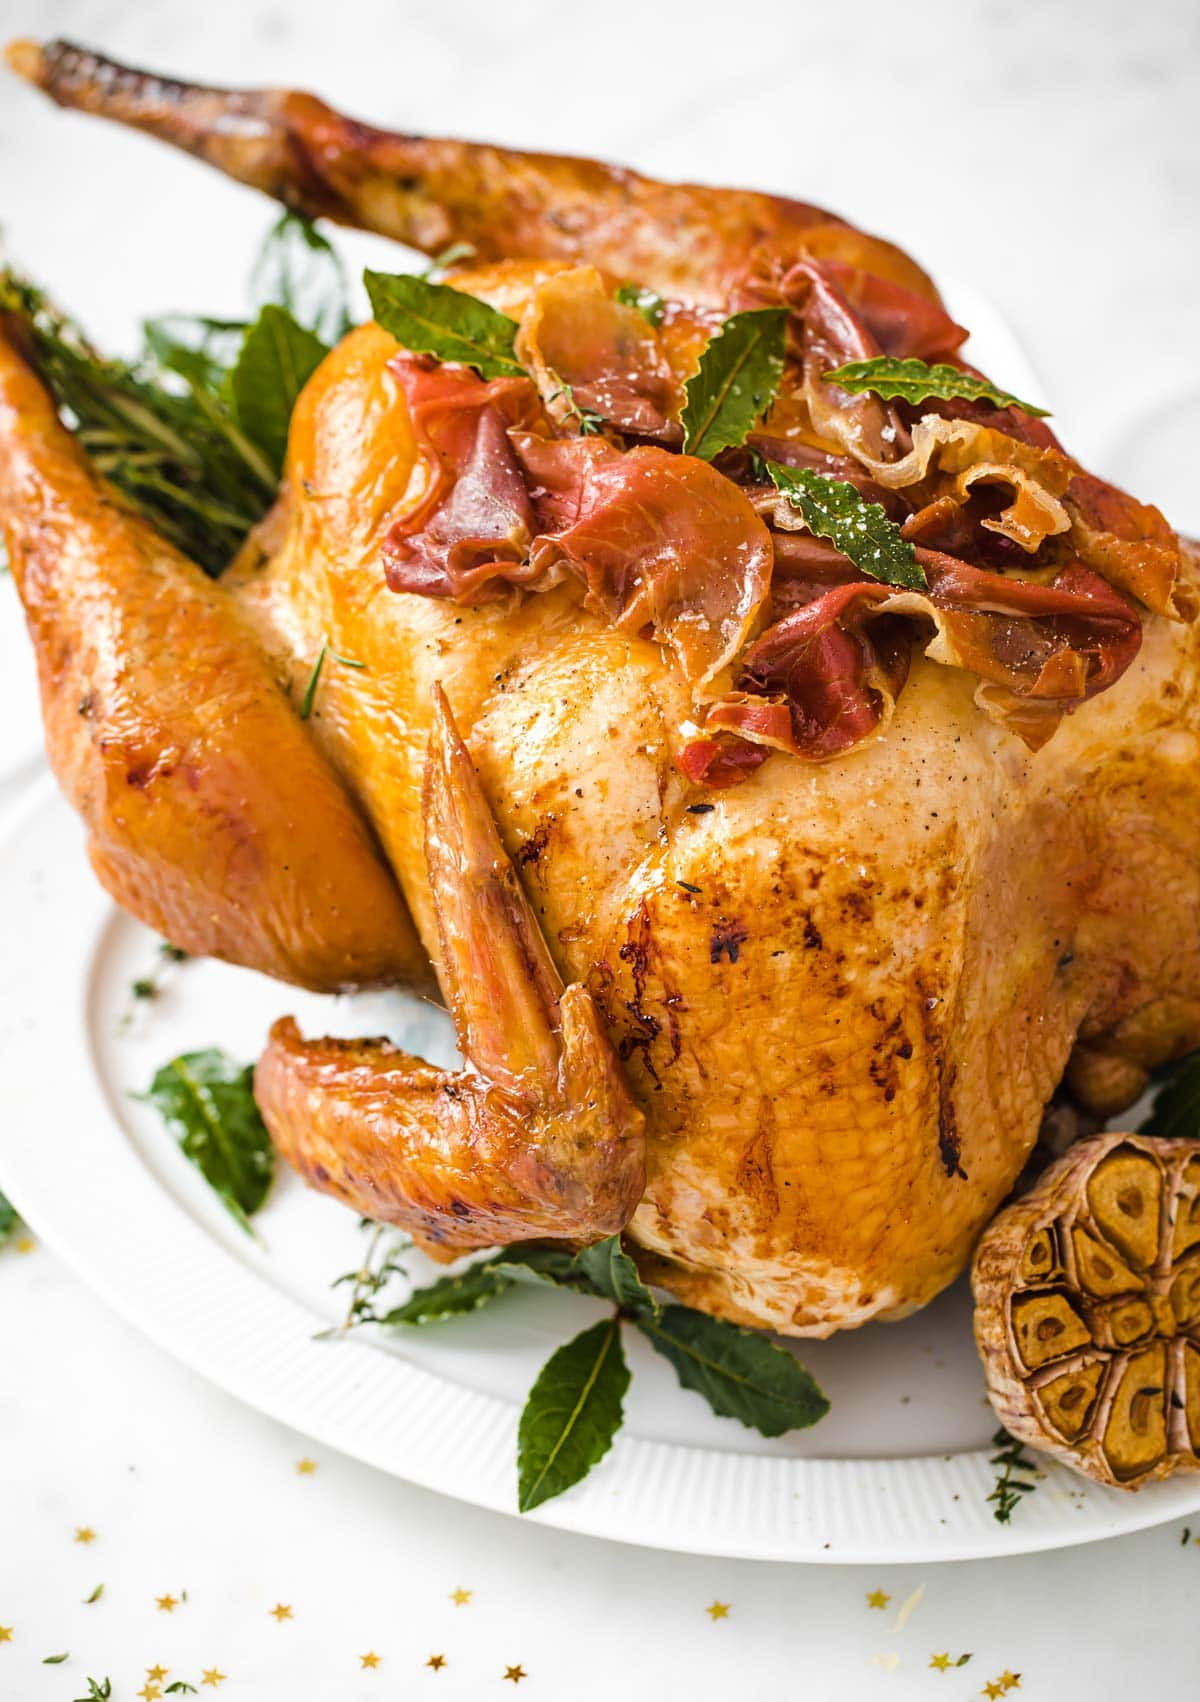 a roasted turkey stuffed with herbs and sage leaves